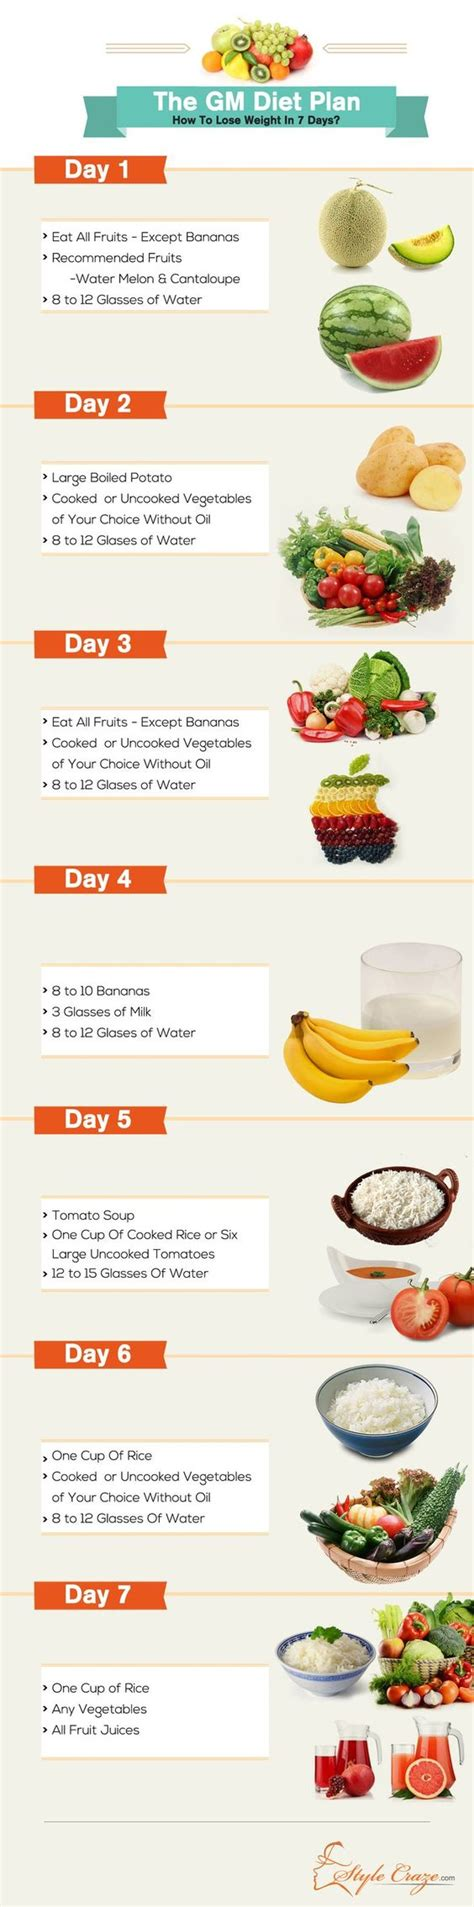 Week Detox Lose Weight by The Gm Diet Plan How To Lose Weight In Just 7 Days To